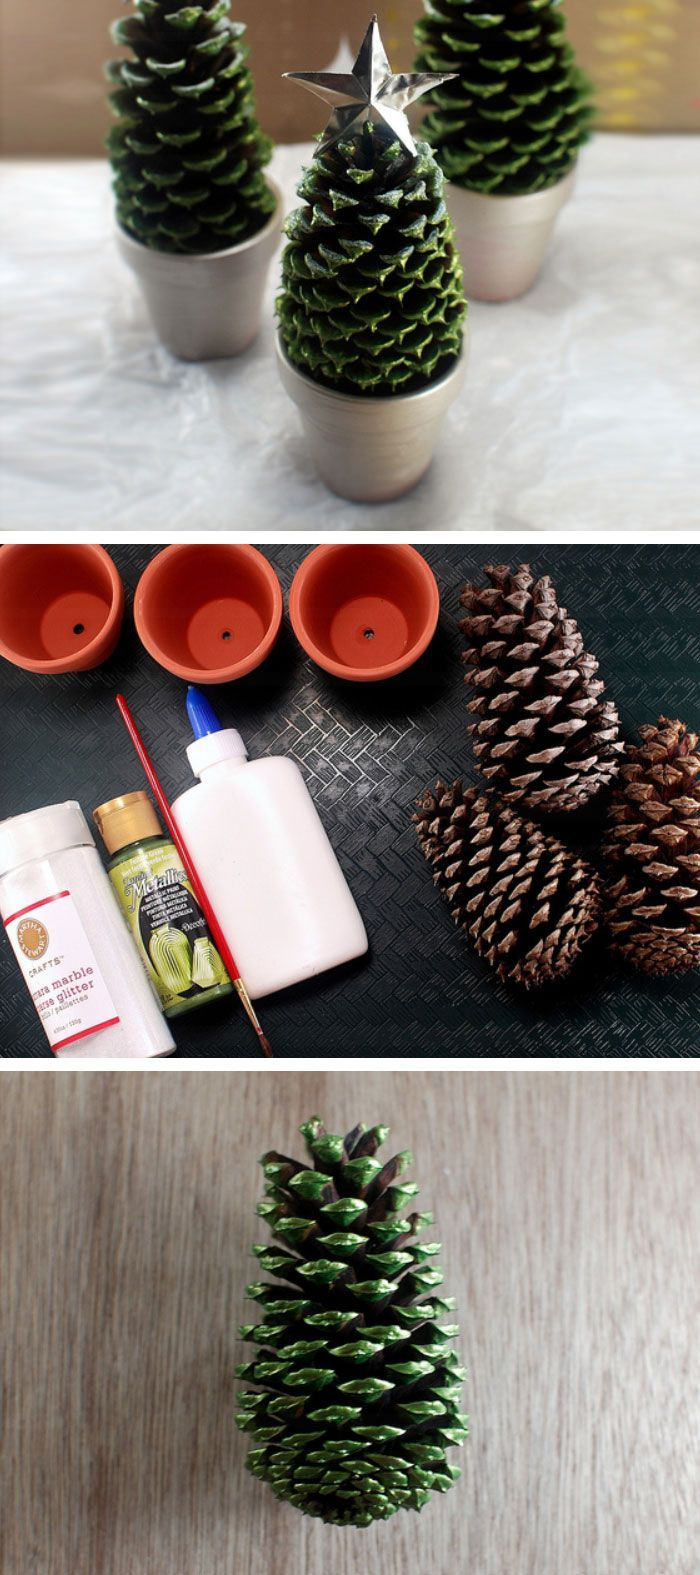 Amazing Last Minute Christmas Decorating Ideas Part - 7: Pine Cone Christmas Trees Click Pic For 22 DIY Christmas Decor Ideas On A  Budget Last Minute Christmas Decorating Ideas For The Home